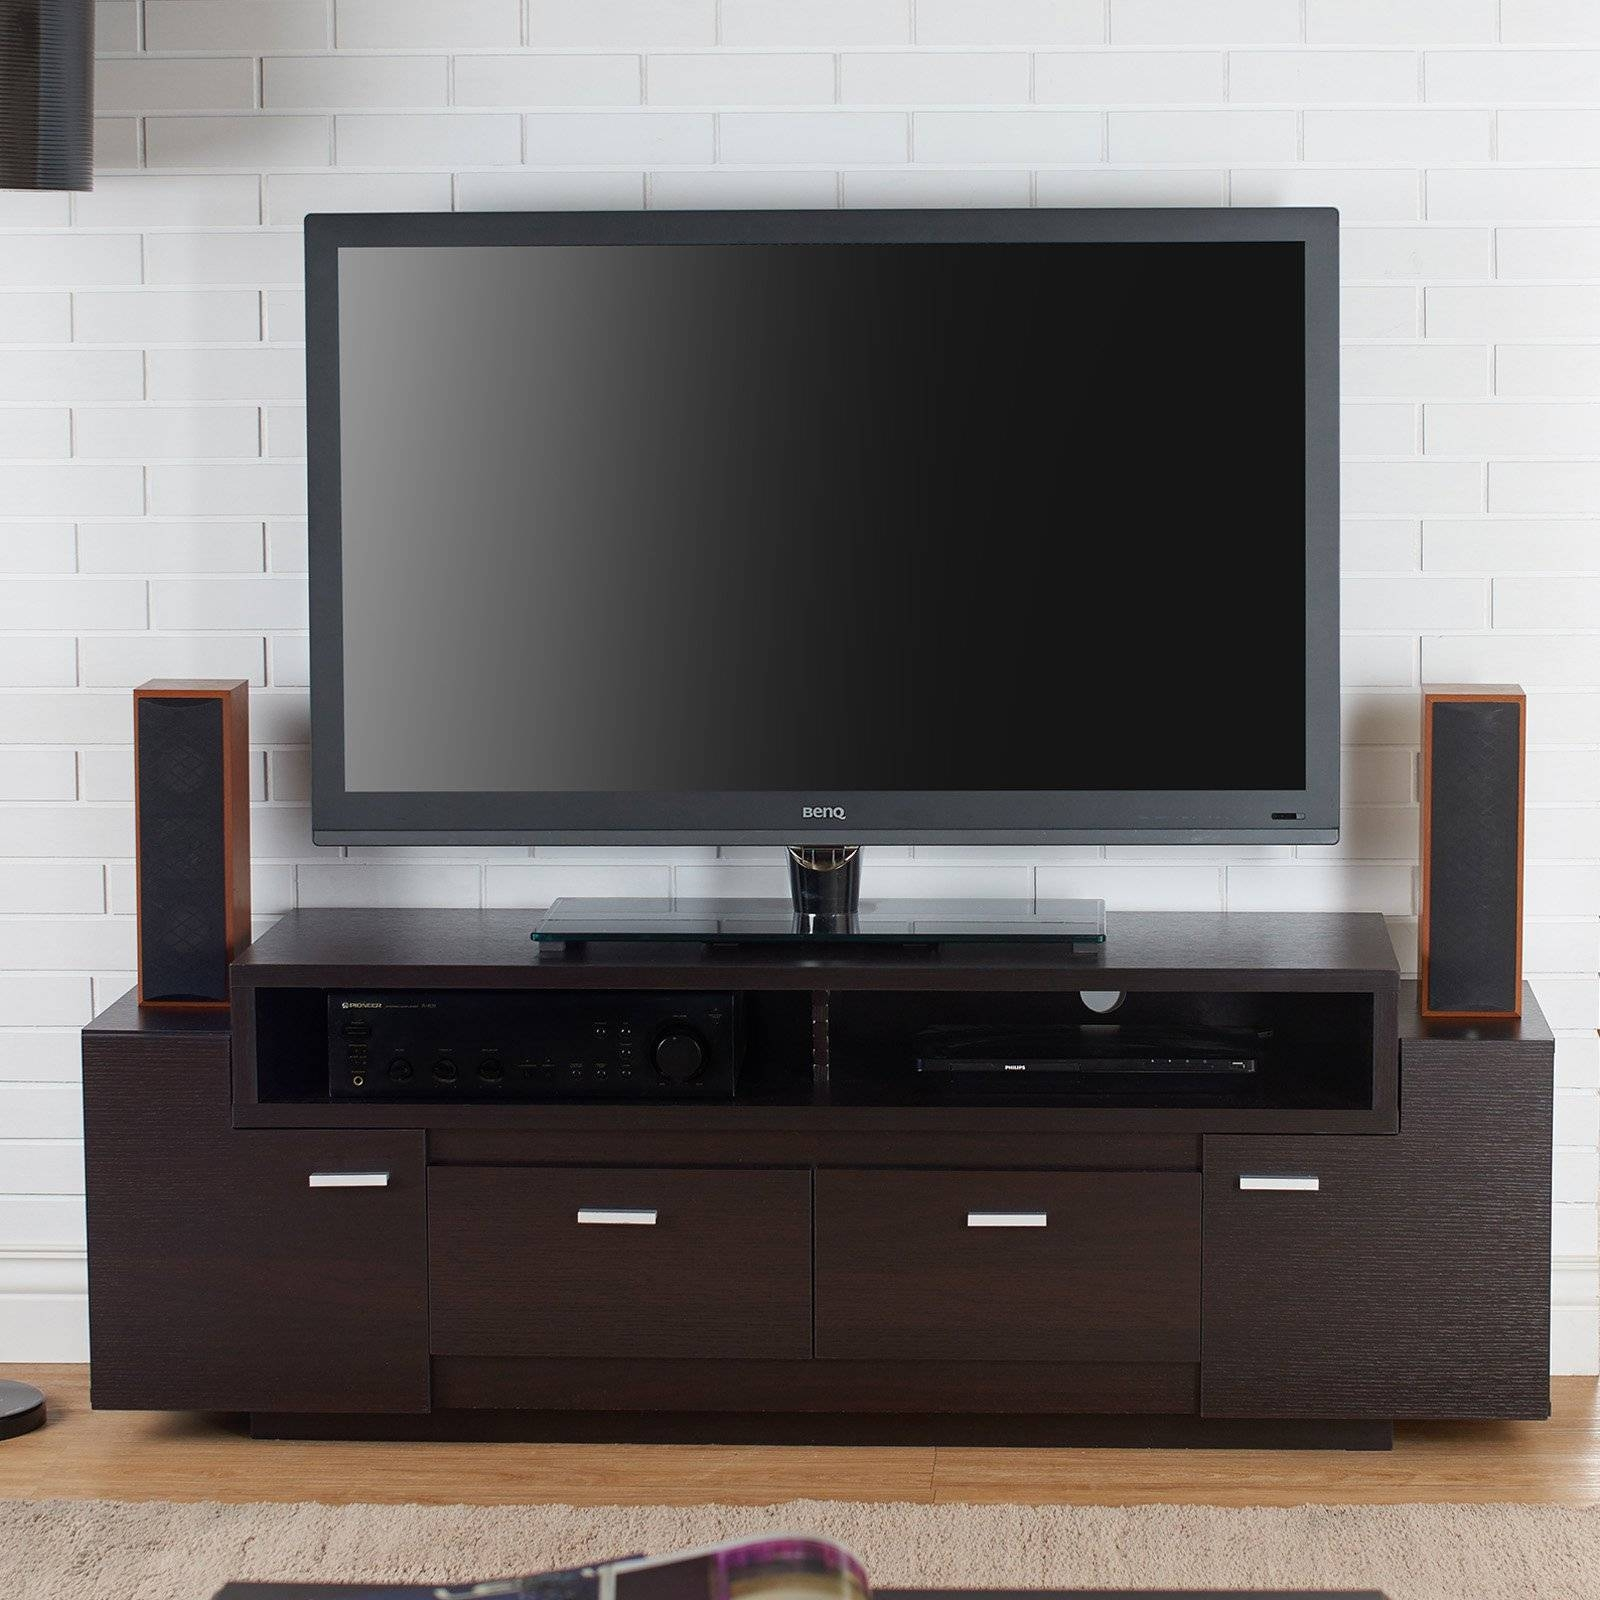 Contemporary & Modern Tv Stands | Hayneedle in Contemporary Corner Tv Stands (Image 2 of 15)